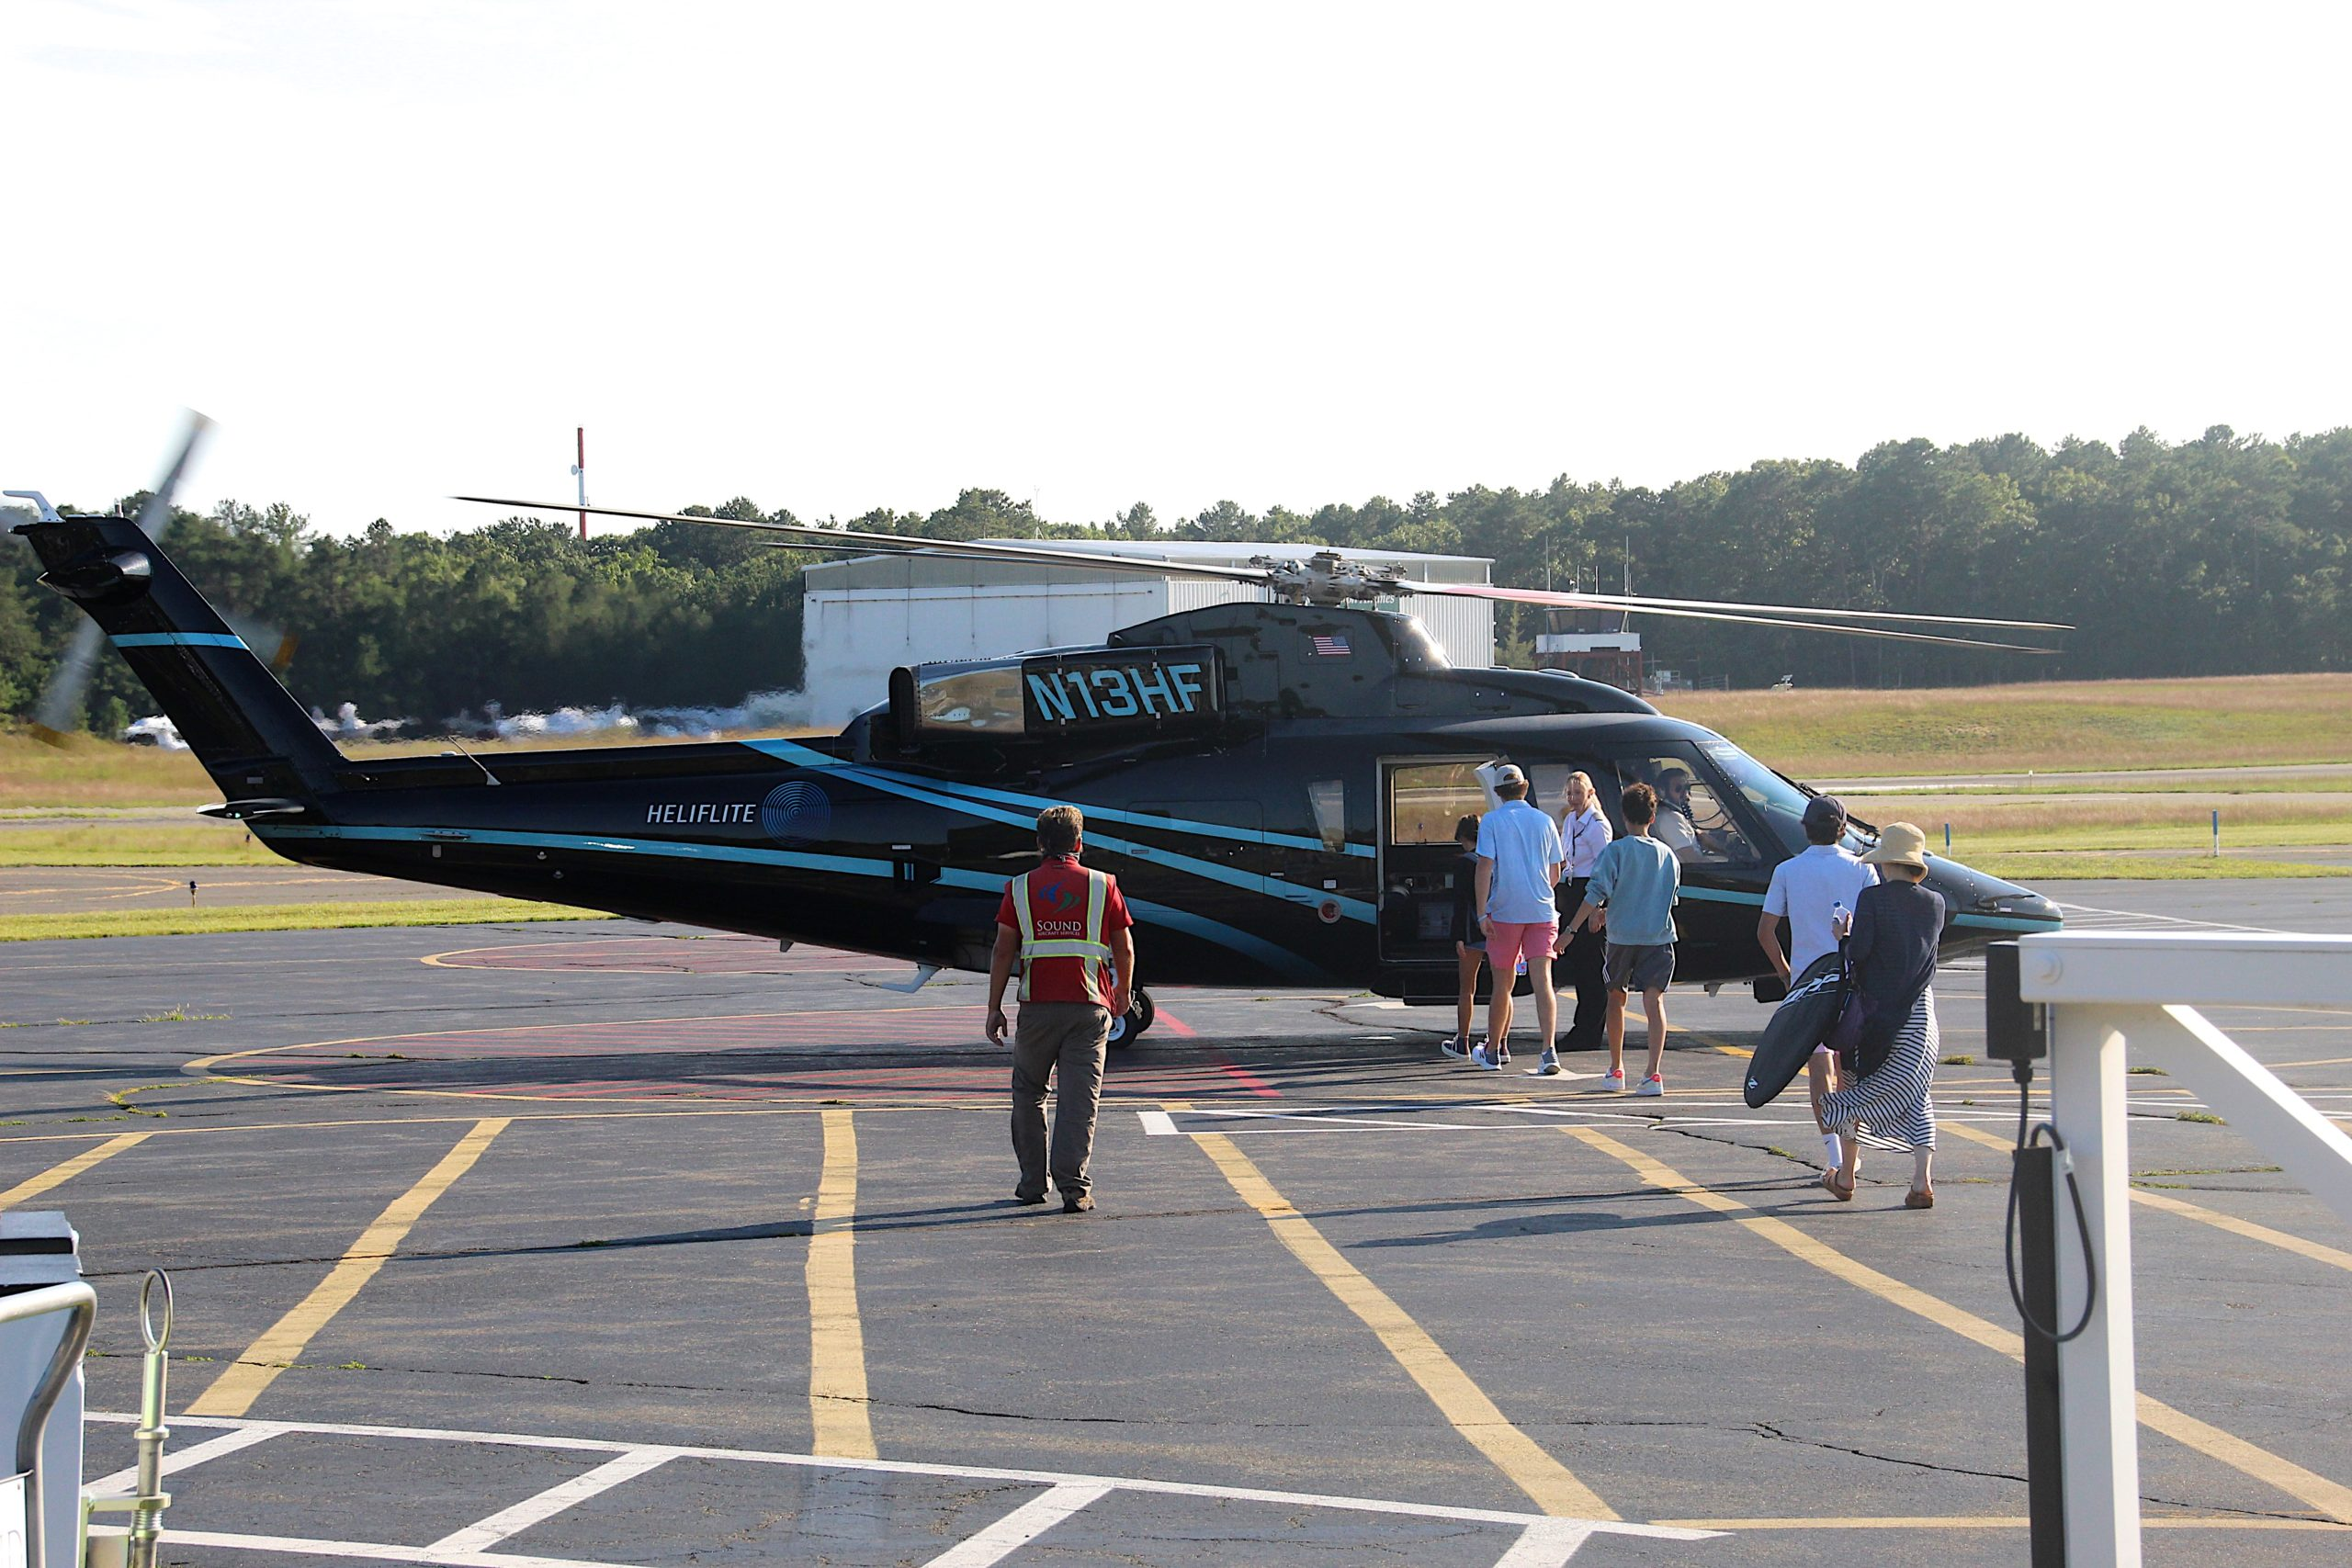 Passengers departing East Hampton Airport via helicopter on Monday afternoon. The town is analyzing how many helicopter and other plane flights would shift their flights to Montauk Airport if the East Hampton Airport were to close or place new limitations on the types of flights.